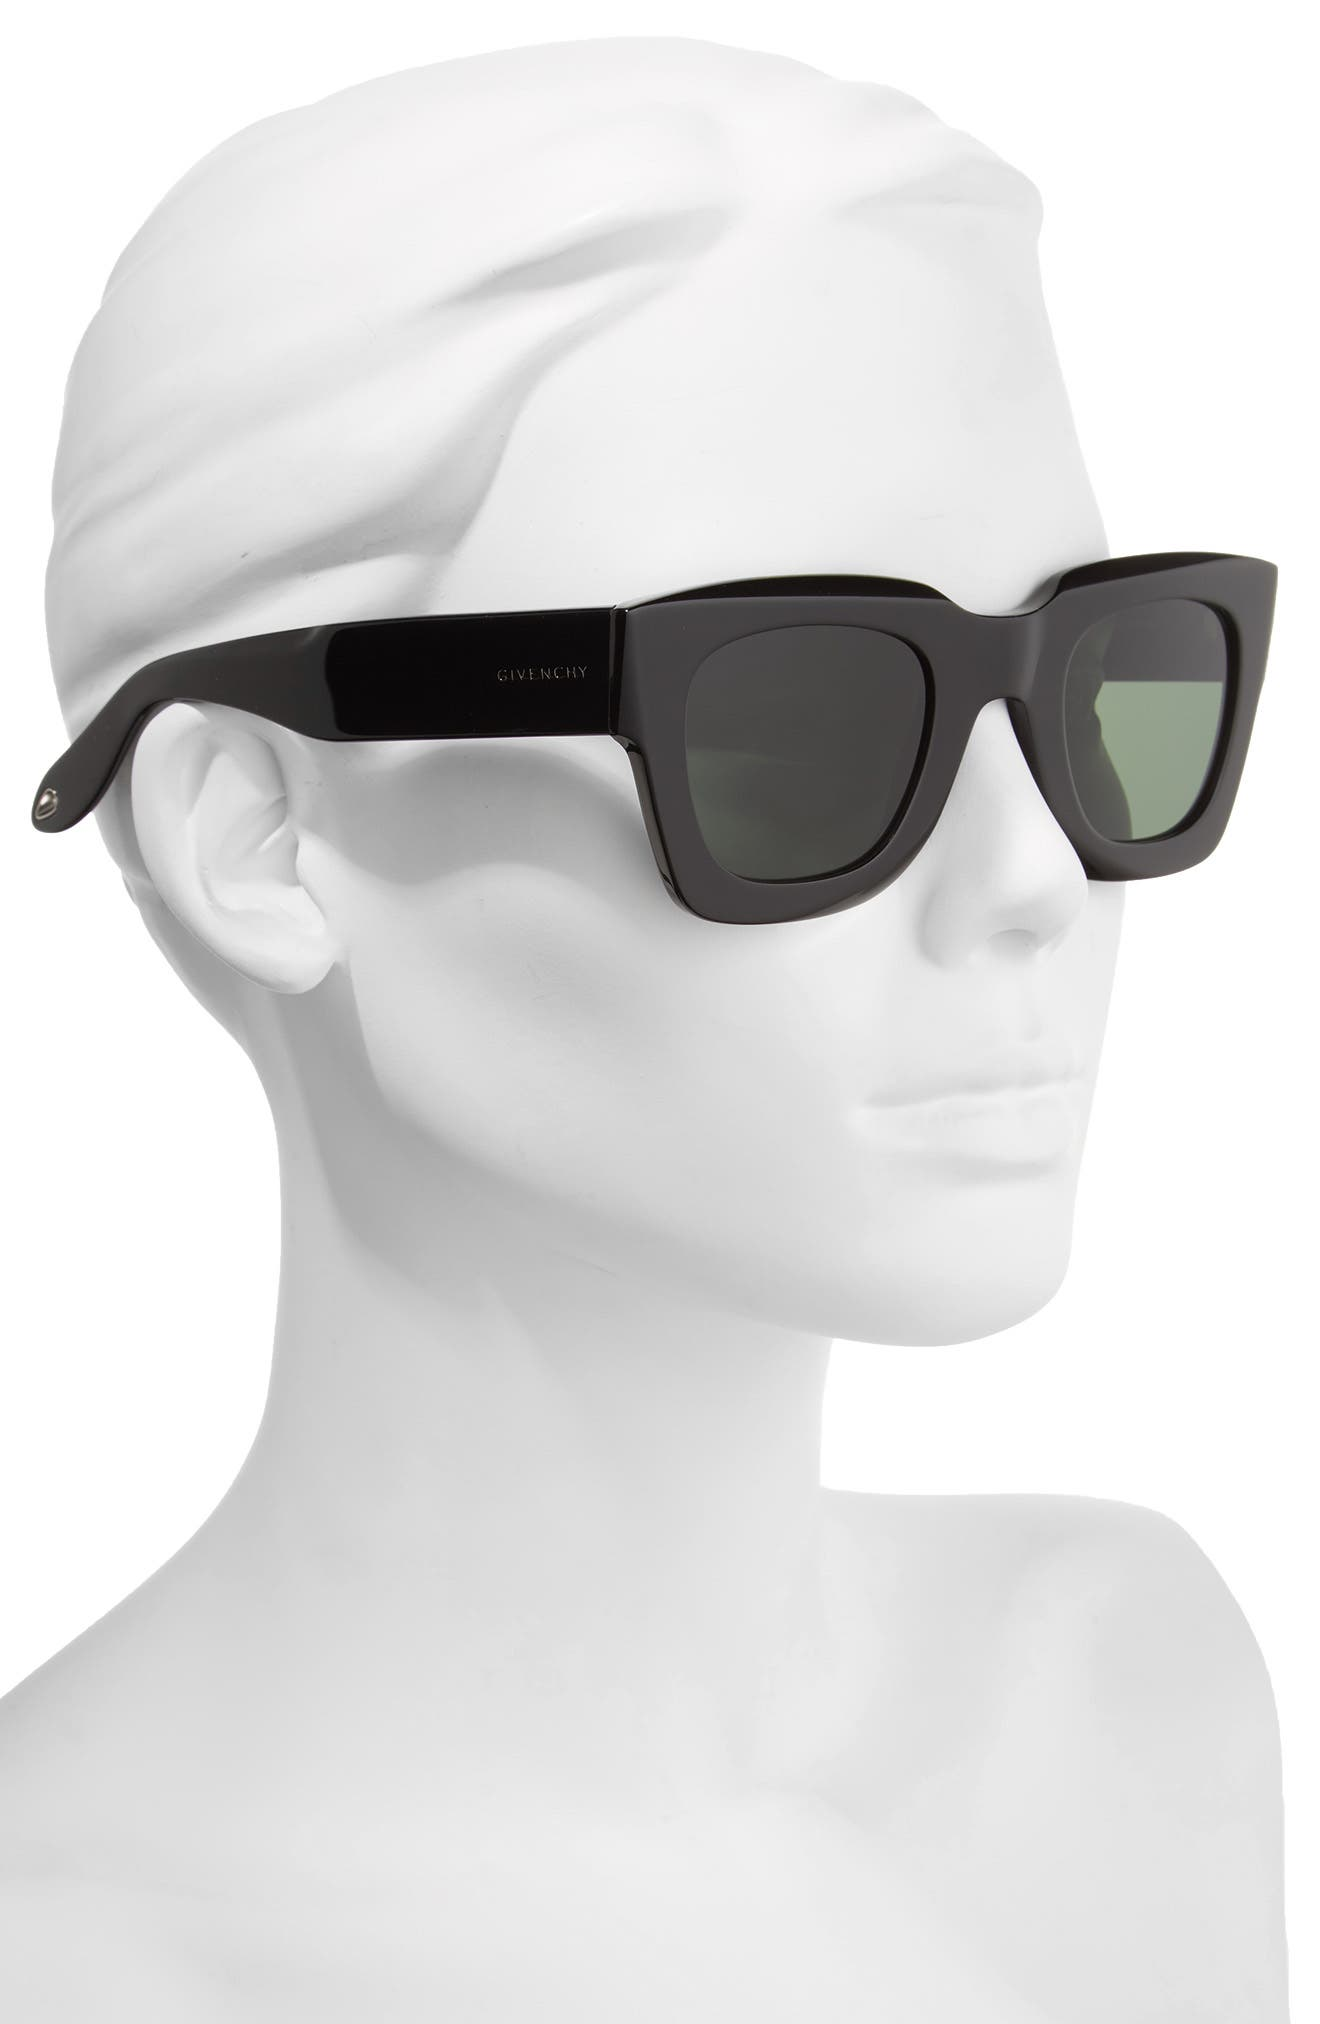 48mm Square Sunglasses,                             Alternate thumbnail 2, color,                             BLACK